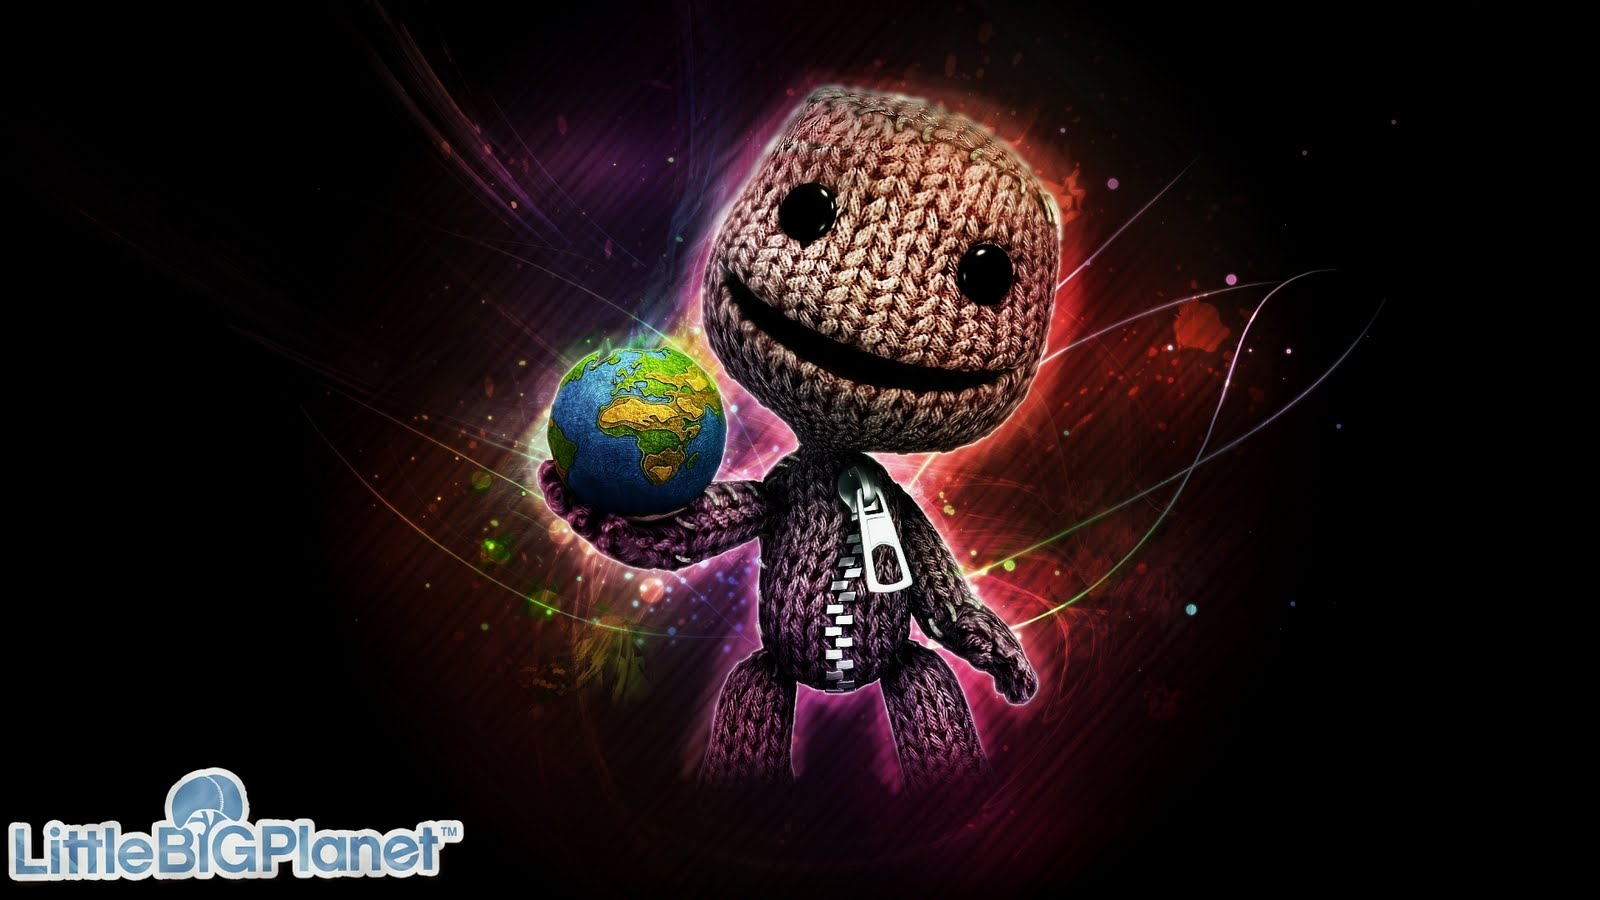 Little Big Planet Wallpaper: Littlebigplanet 1&2 News: July 2010